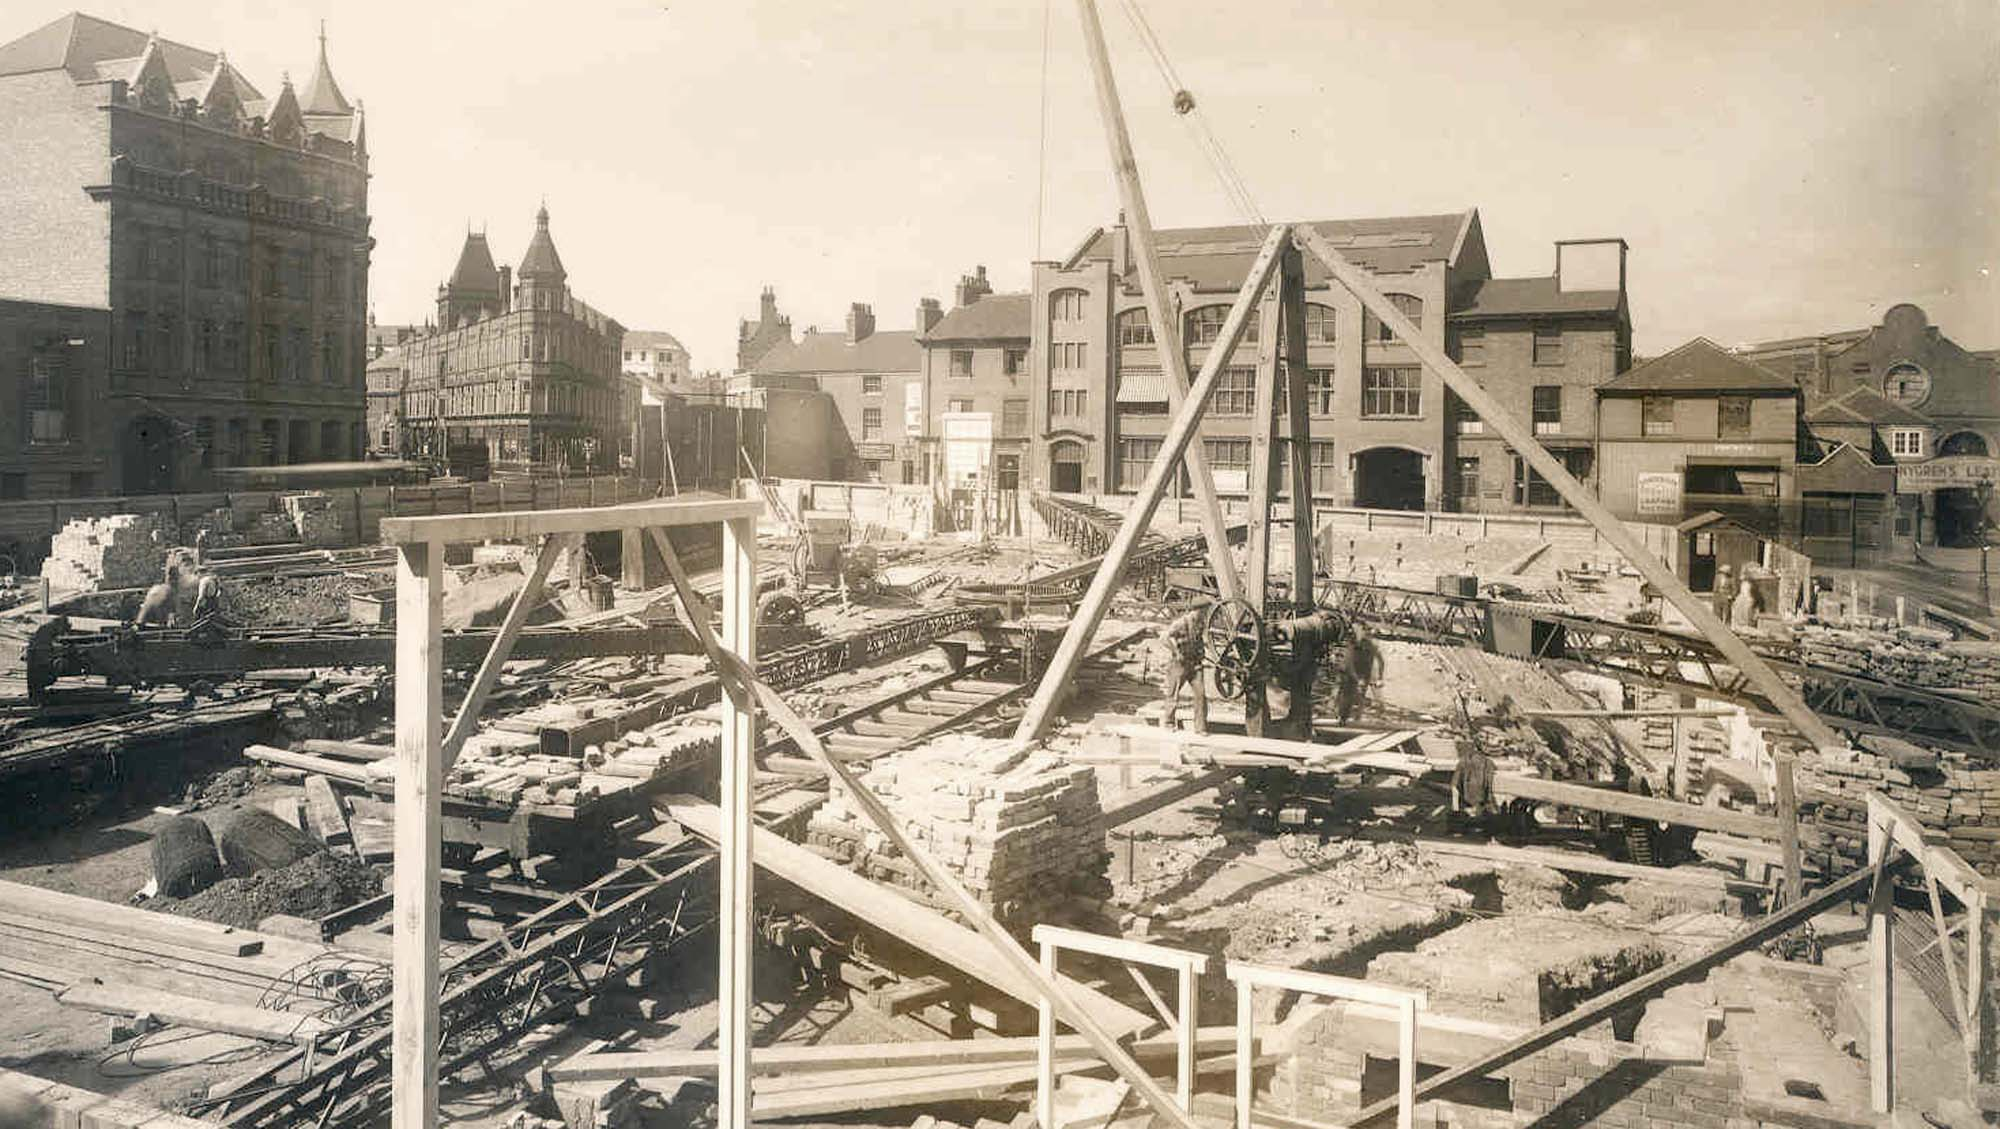 Looking across the Odeon Cinema construction site (1937) to the factory building that were replaced by the Curve -